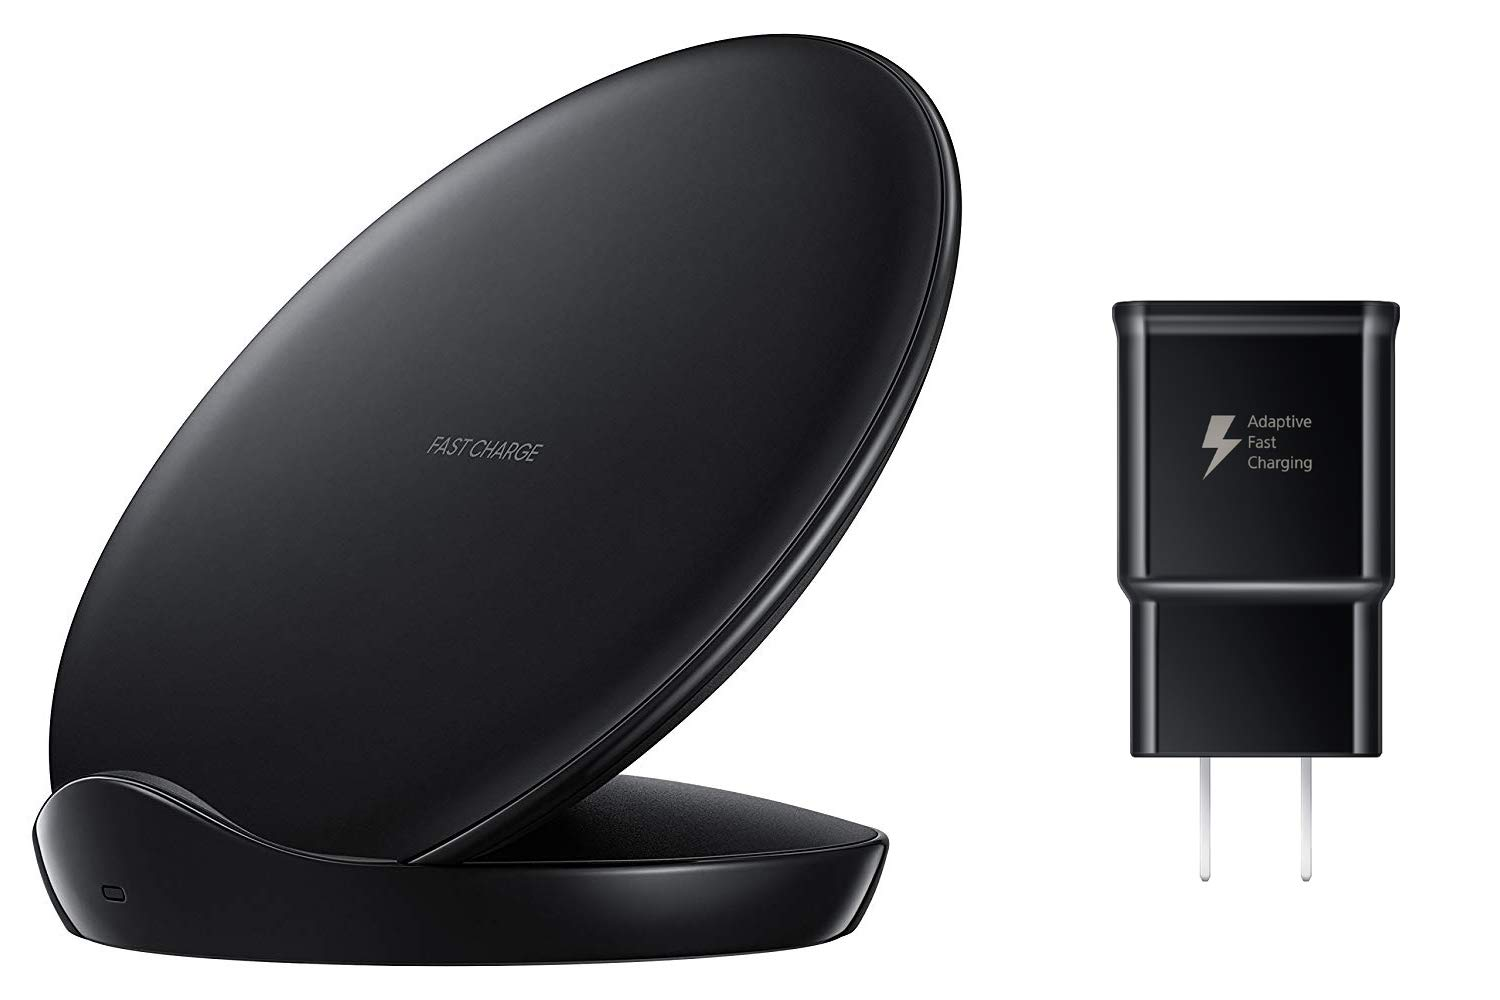 Samsung Qi Certified Fast Charge Wireless Charger Stand (2018 Edition) Universally Compatible with Qi Enabled Smartphones - US Version - Black - EP-N5100TBEGUS by Samsung